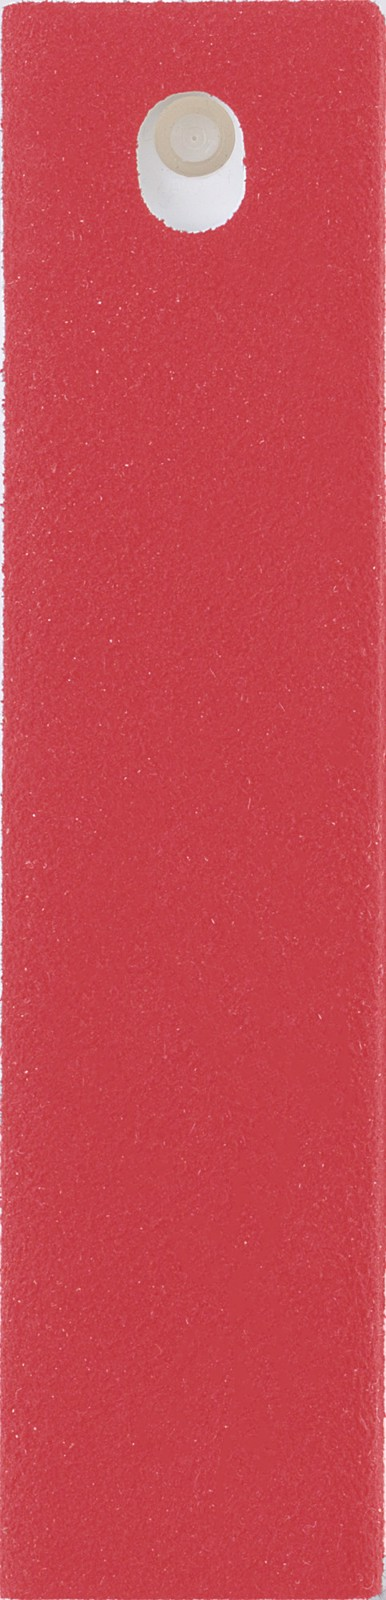 PP screen cleaner spray - Red